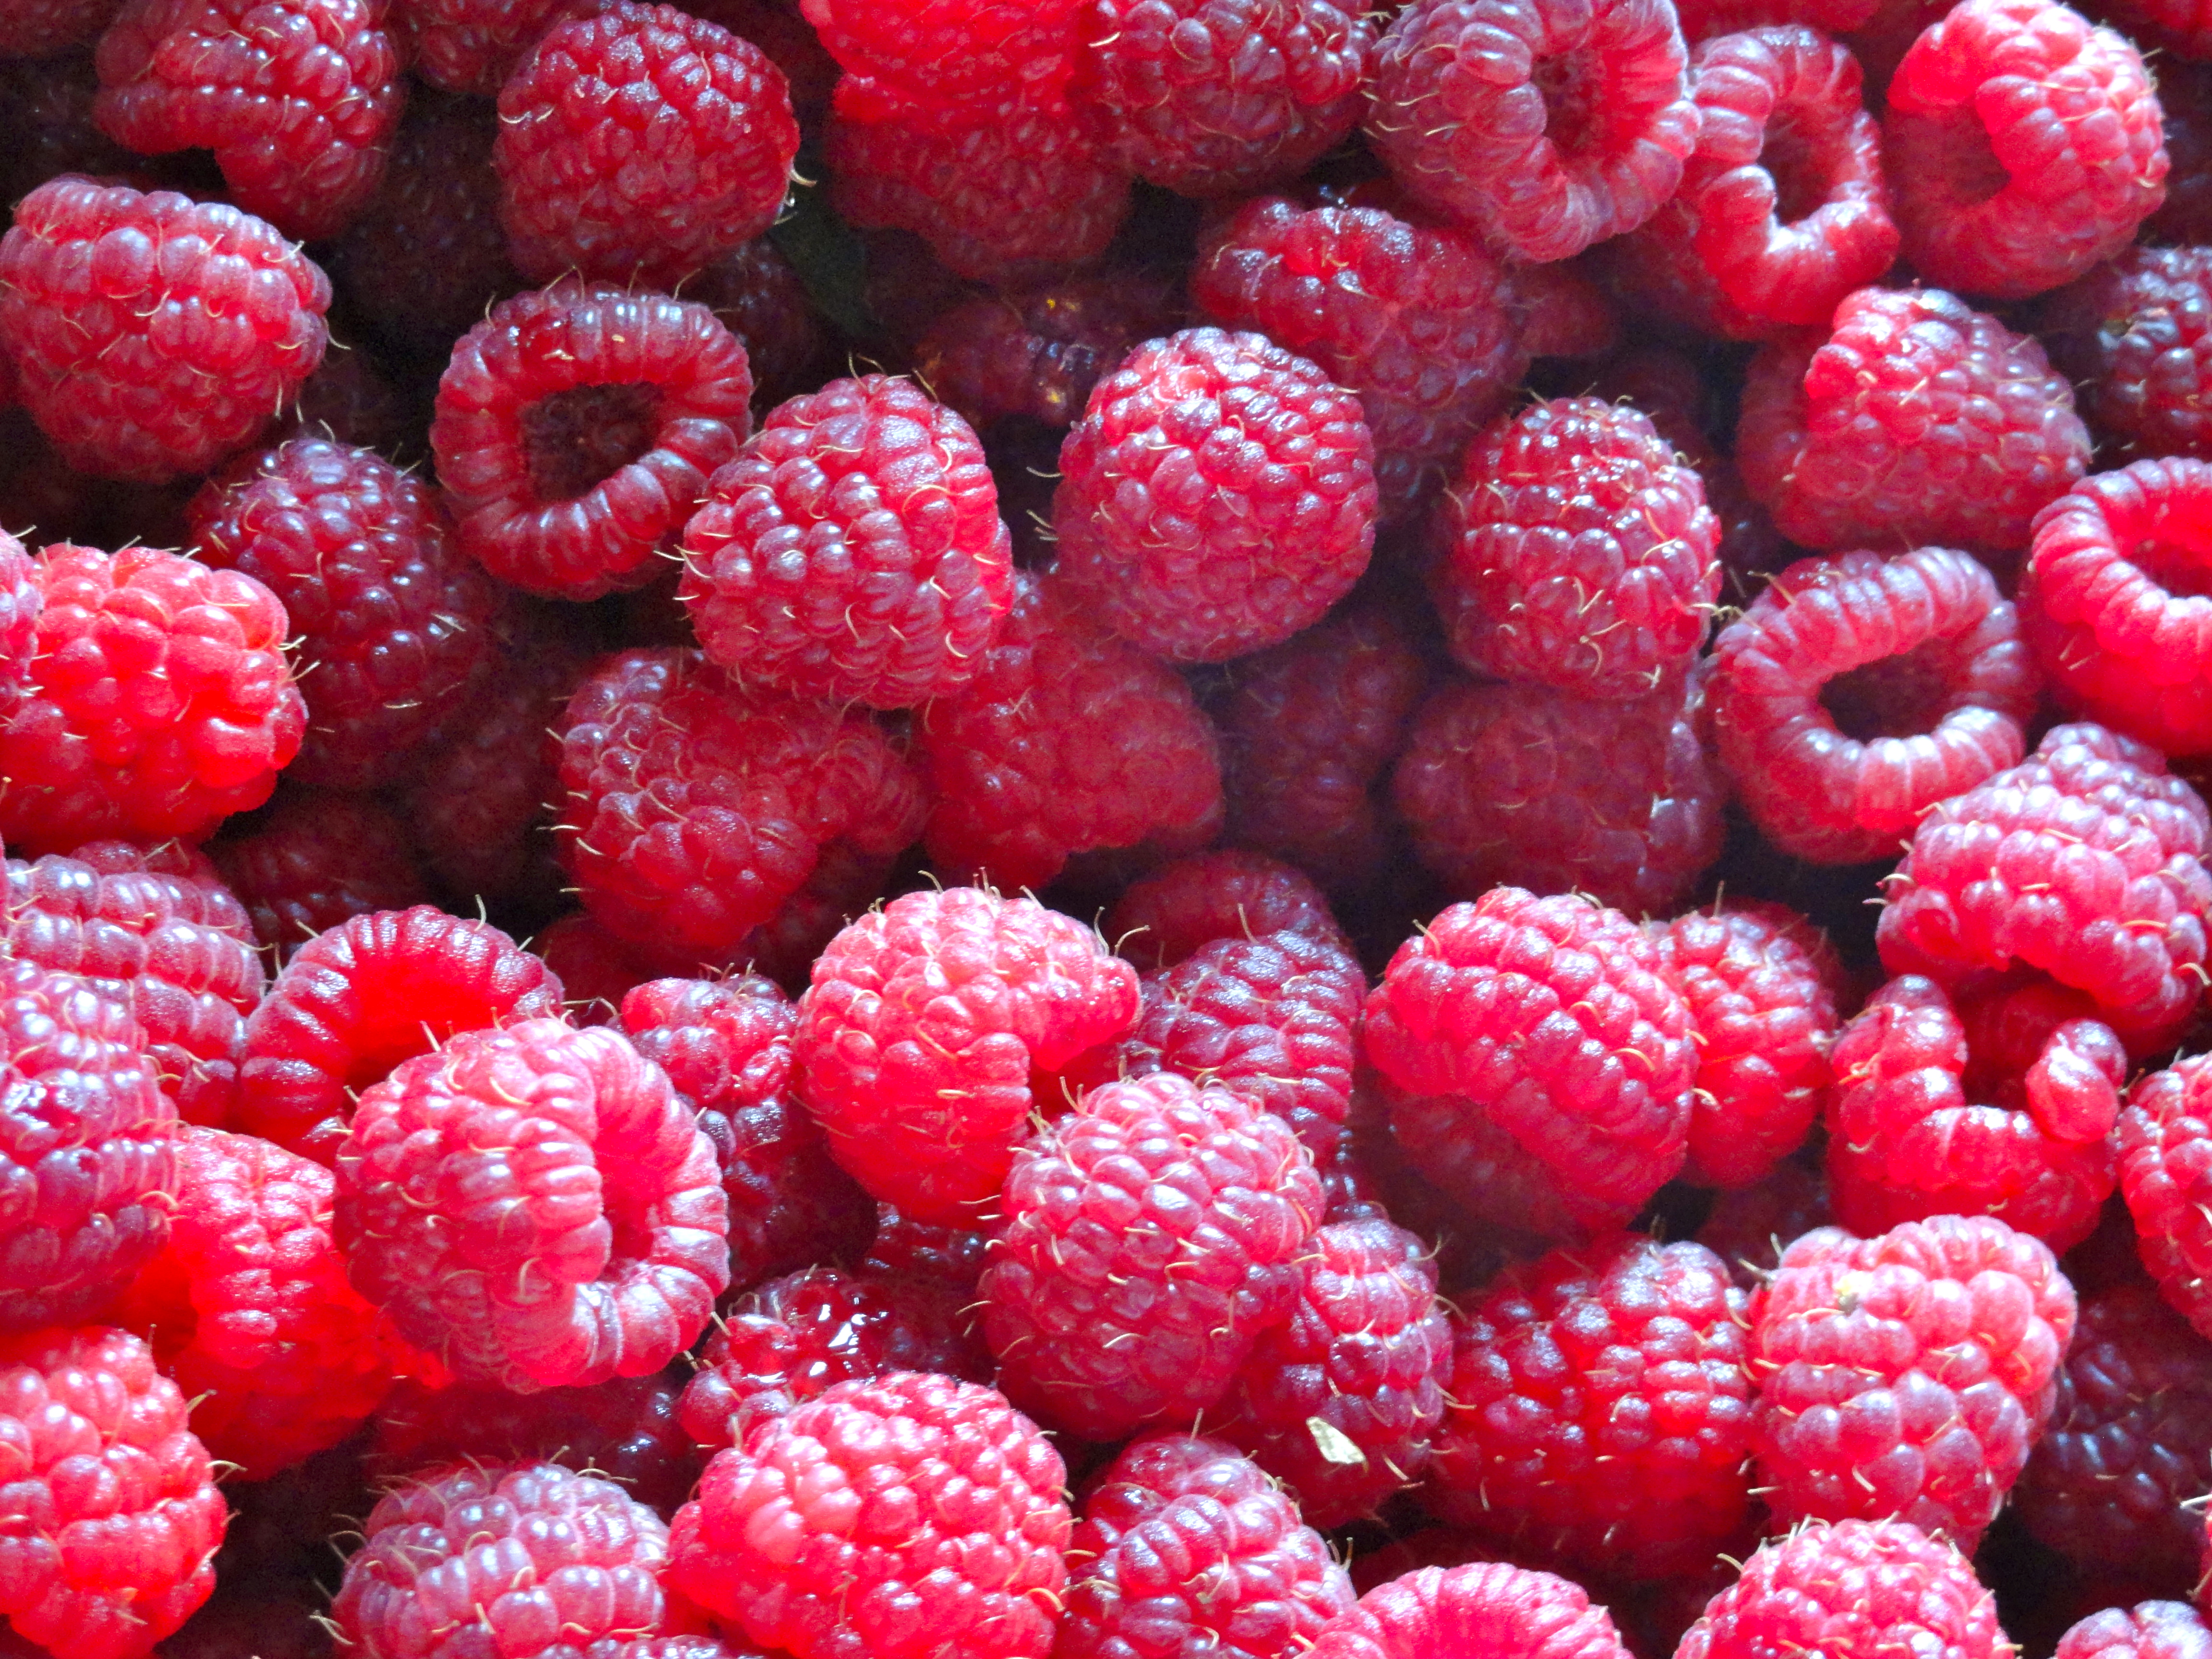 Our friends, the Bishops, grow incredible pick-your-own raspberries (and blueberries and thornless blackberries) at Yellow Hill Farm in Biglerville, PA. They generously donated a couple of gallons of berries for camp.